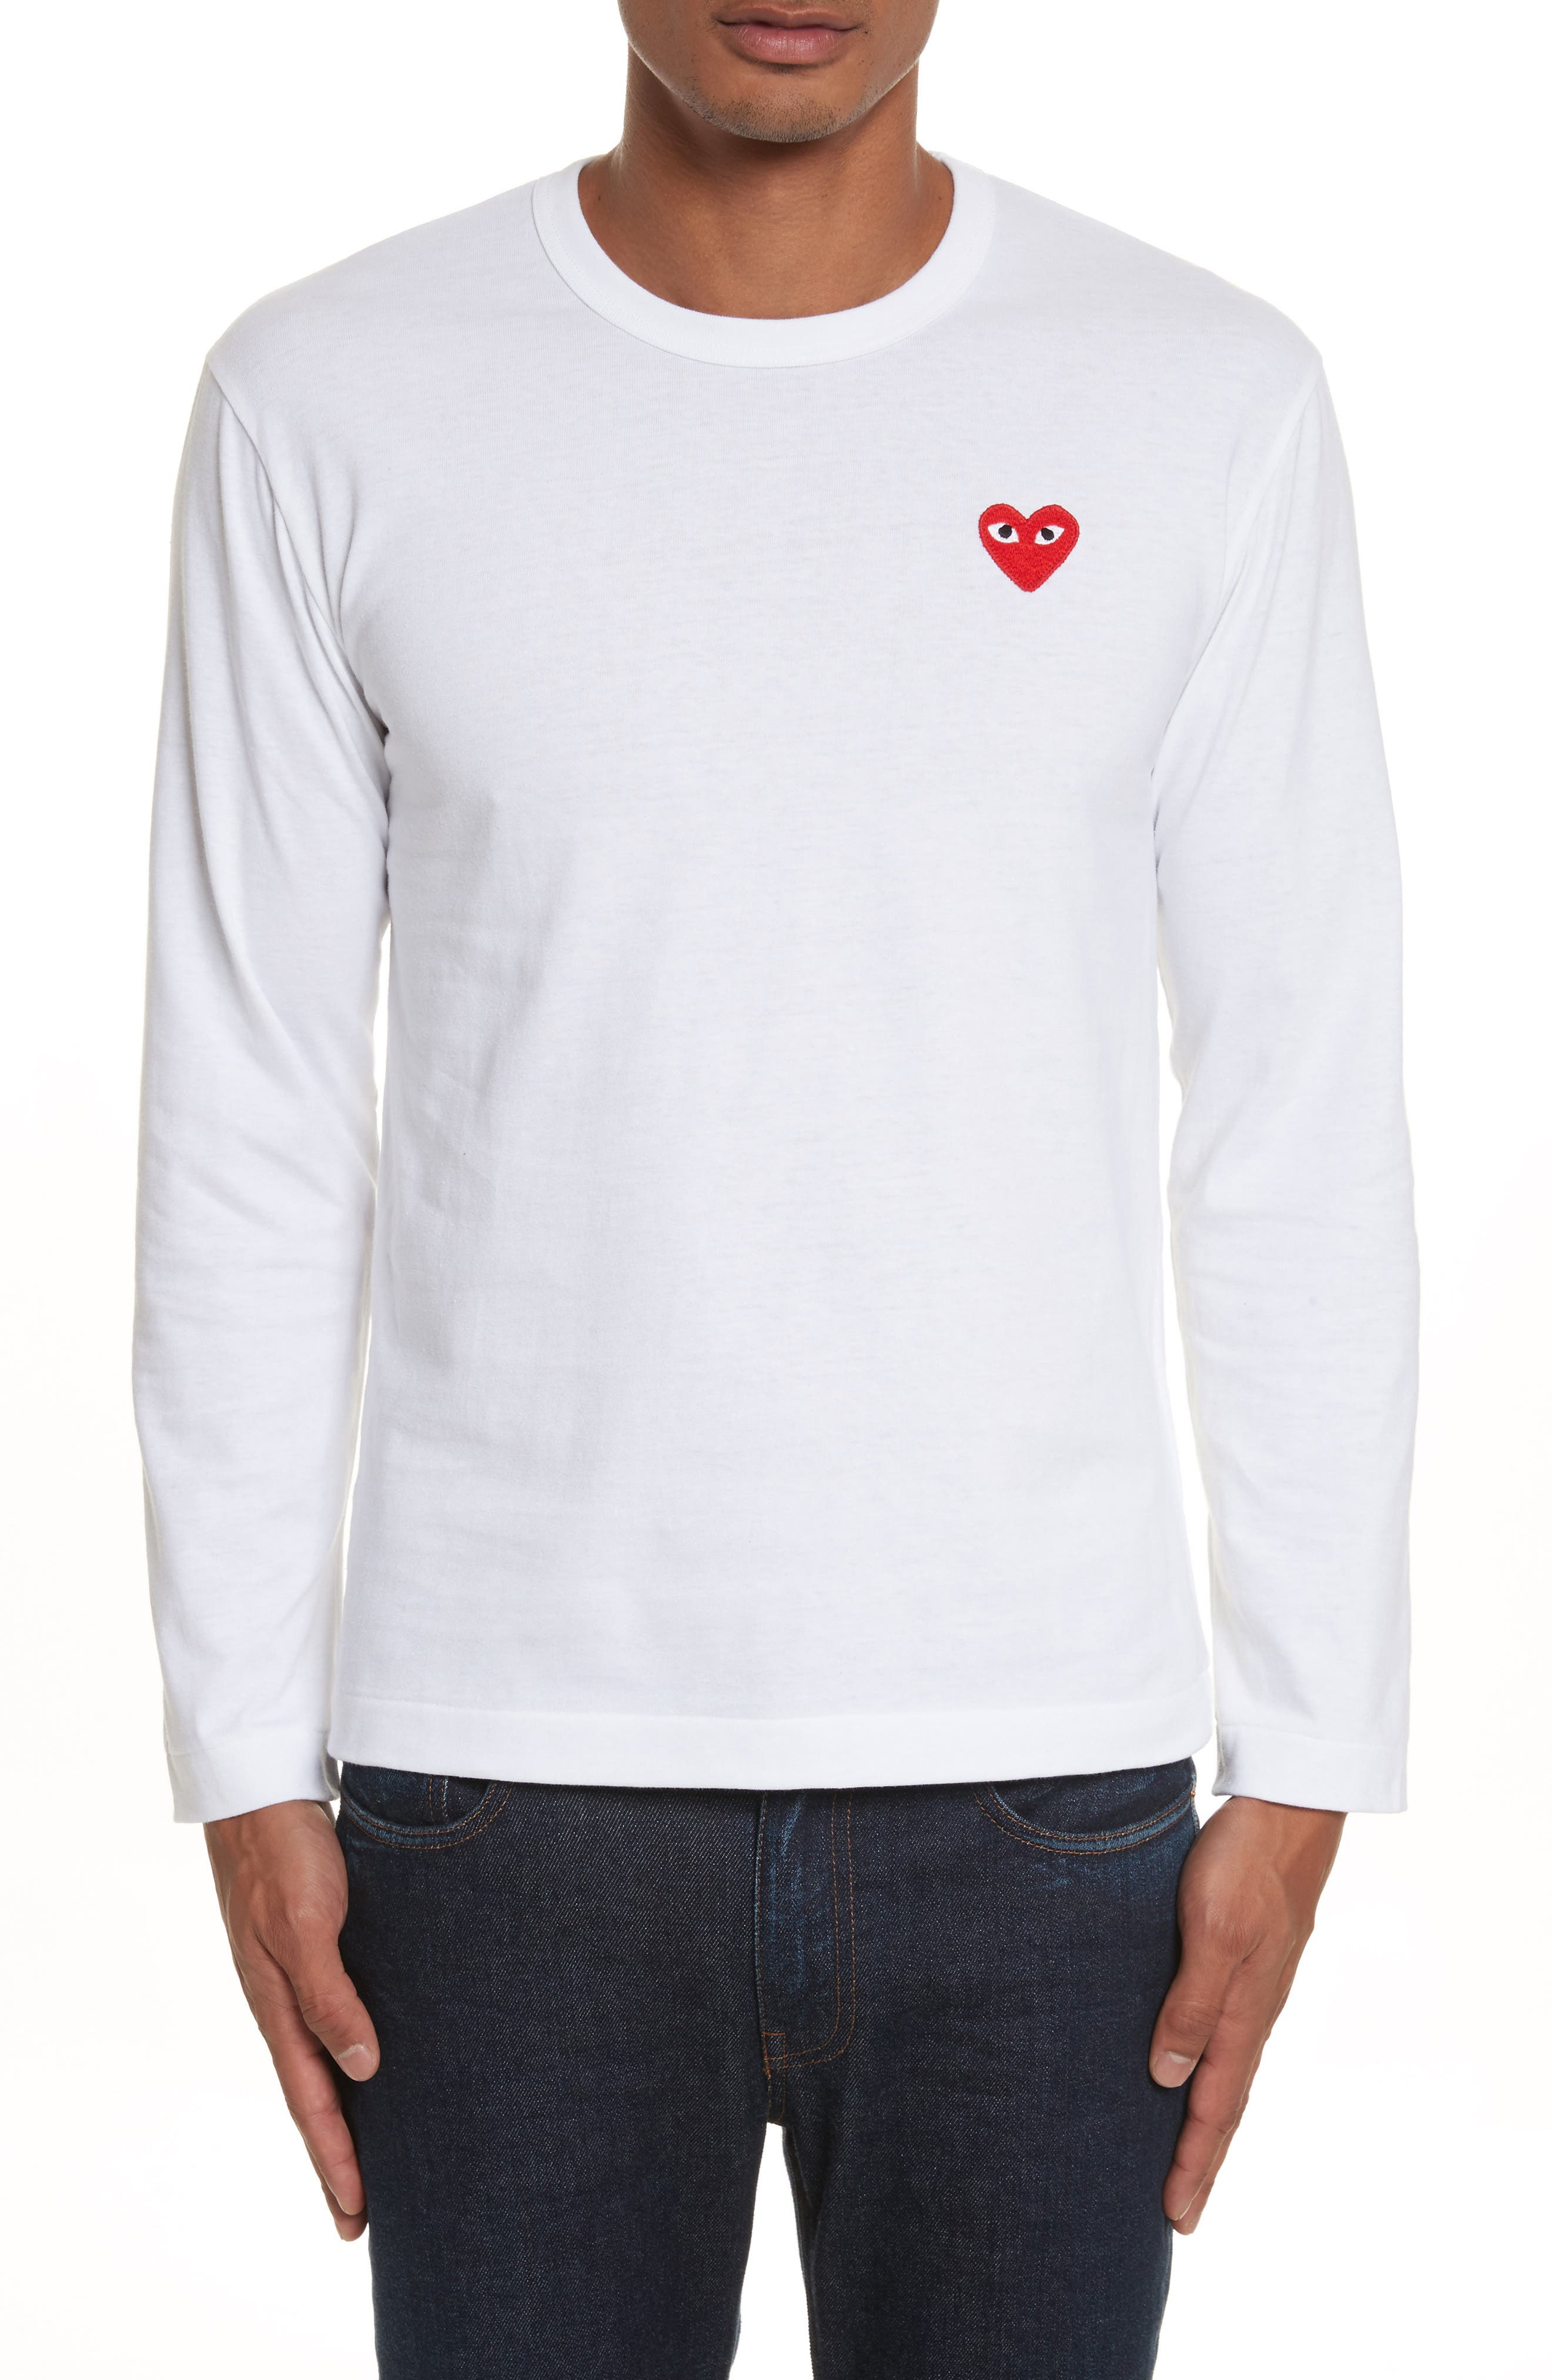 PLAY Long Sleeve T-Shirt,                         Main,                         color, White